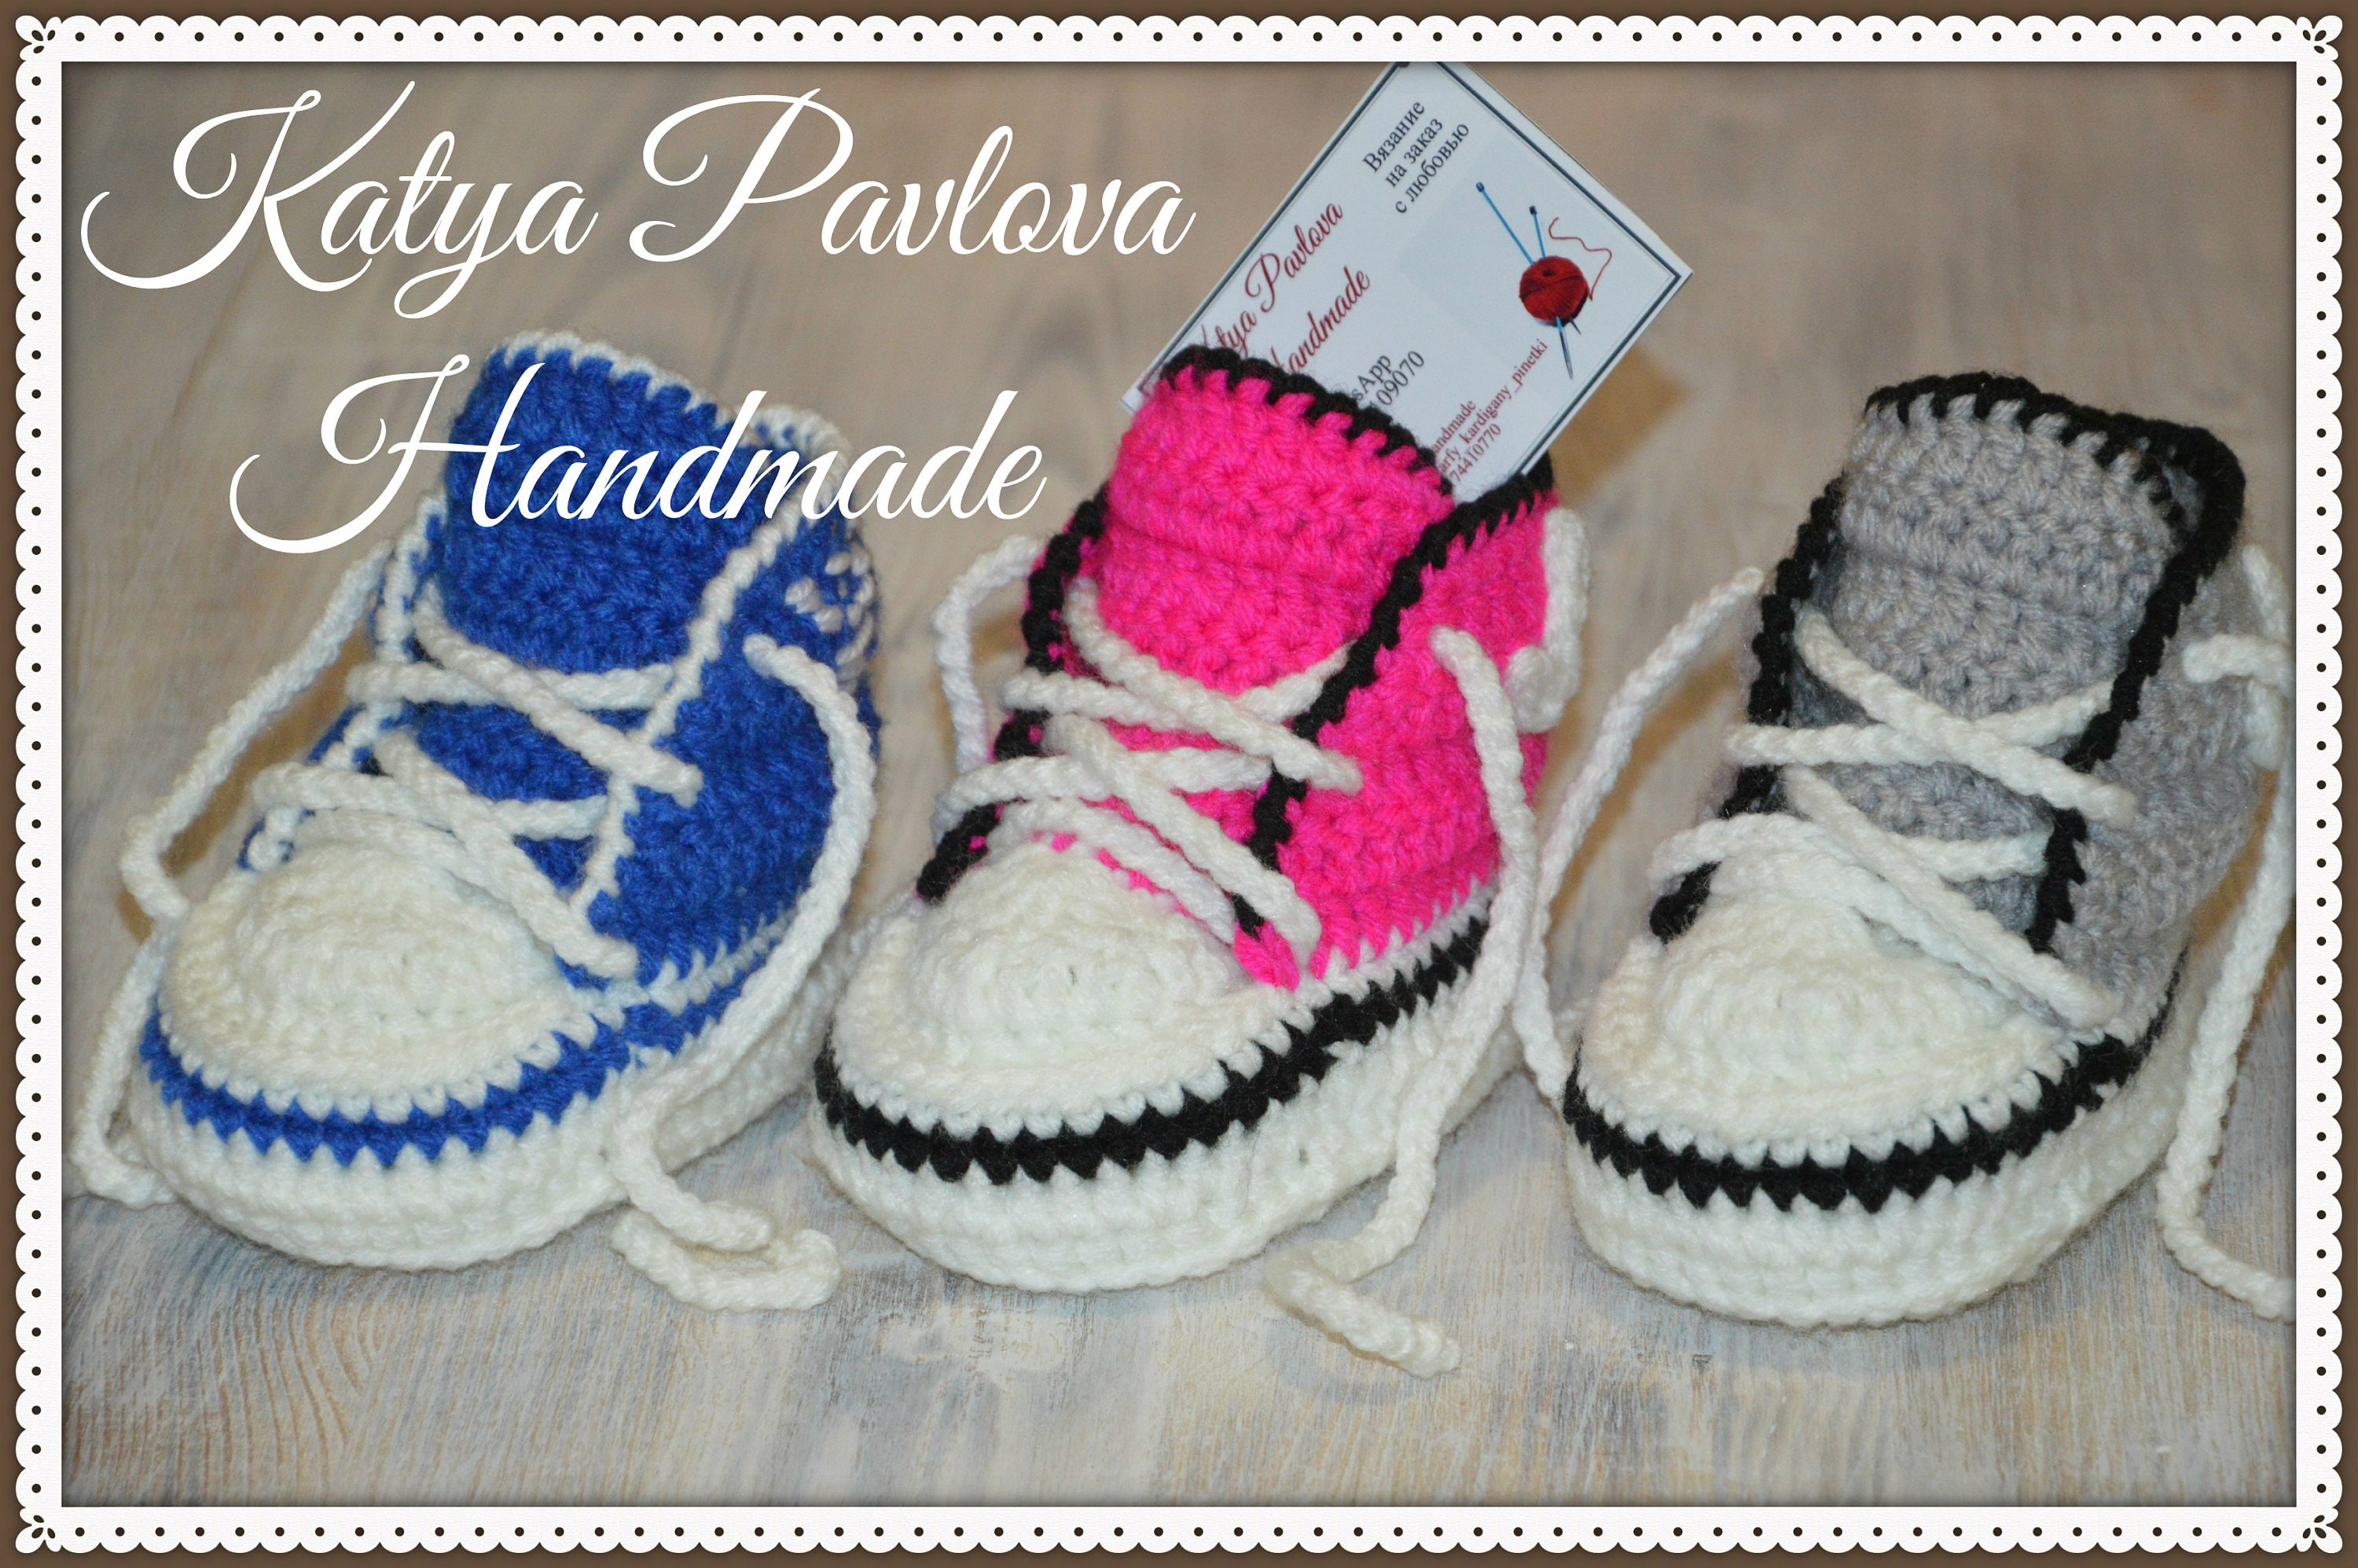 c9622c501 Crochet converse baby girl boy Sneakers shoes First newborn